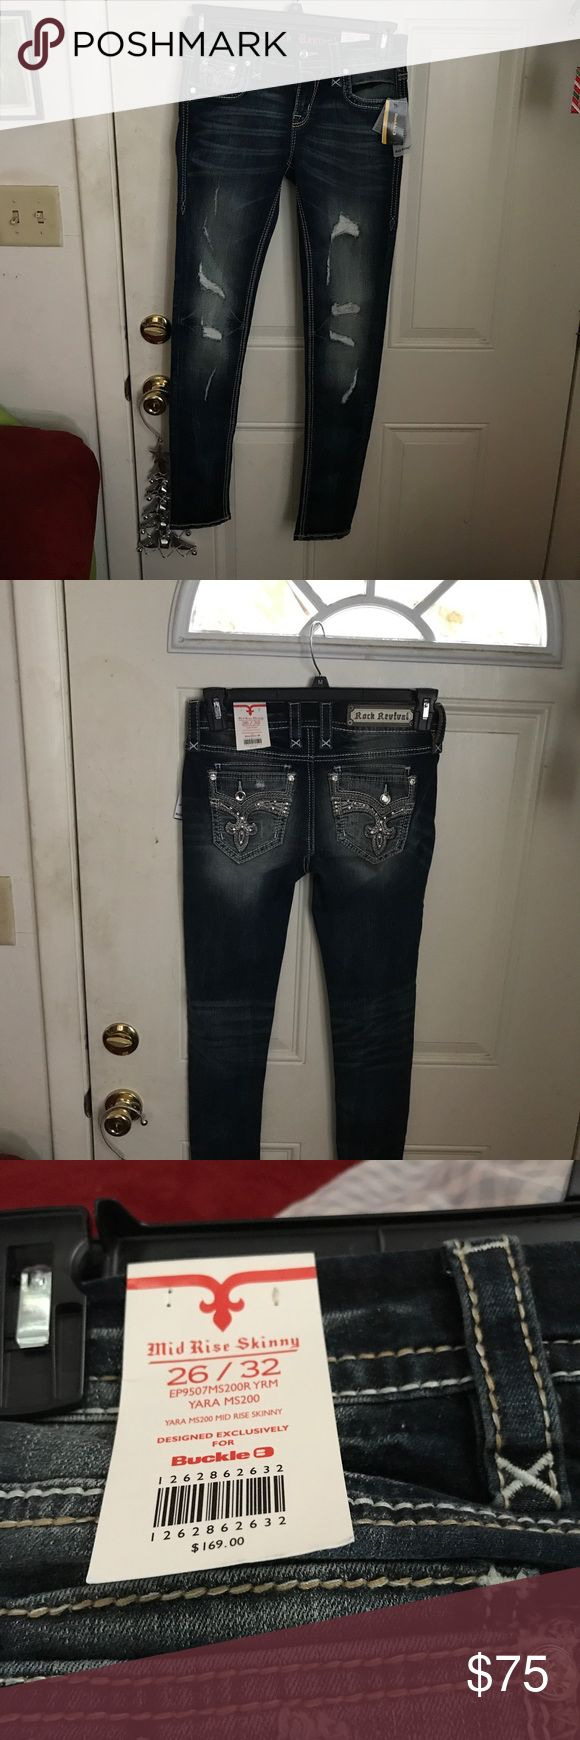 Rock revival women's jeans size 26/32 Rock revival jeans denim cute and skinny Rock Revival Jeans Skinny